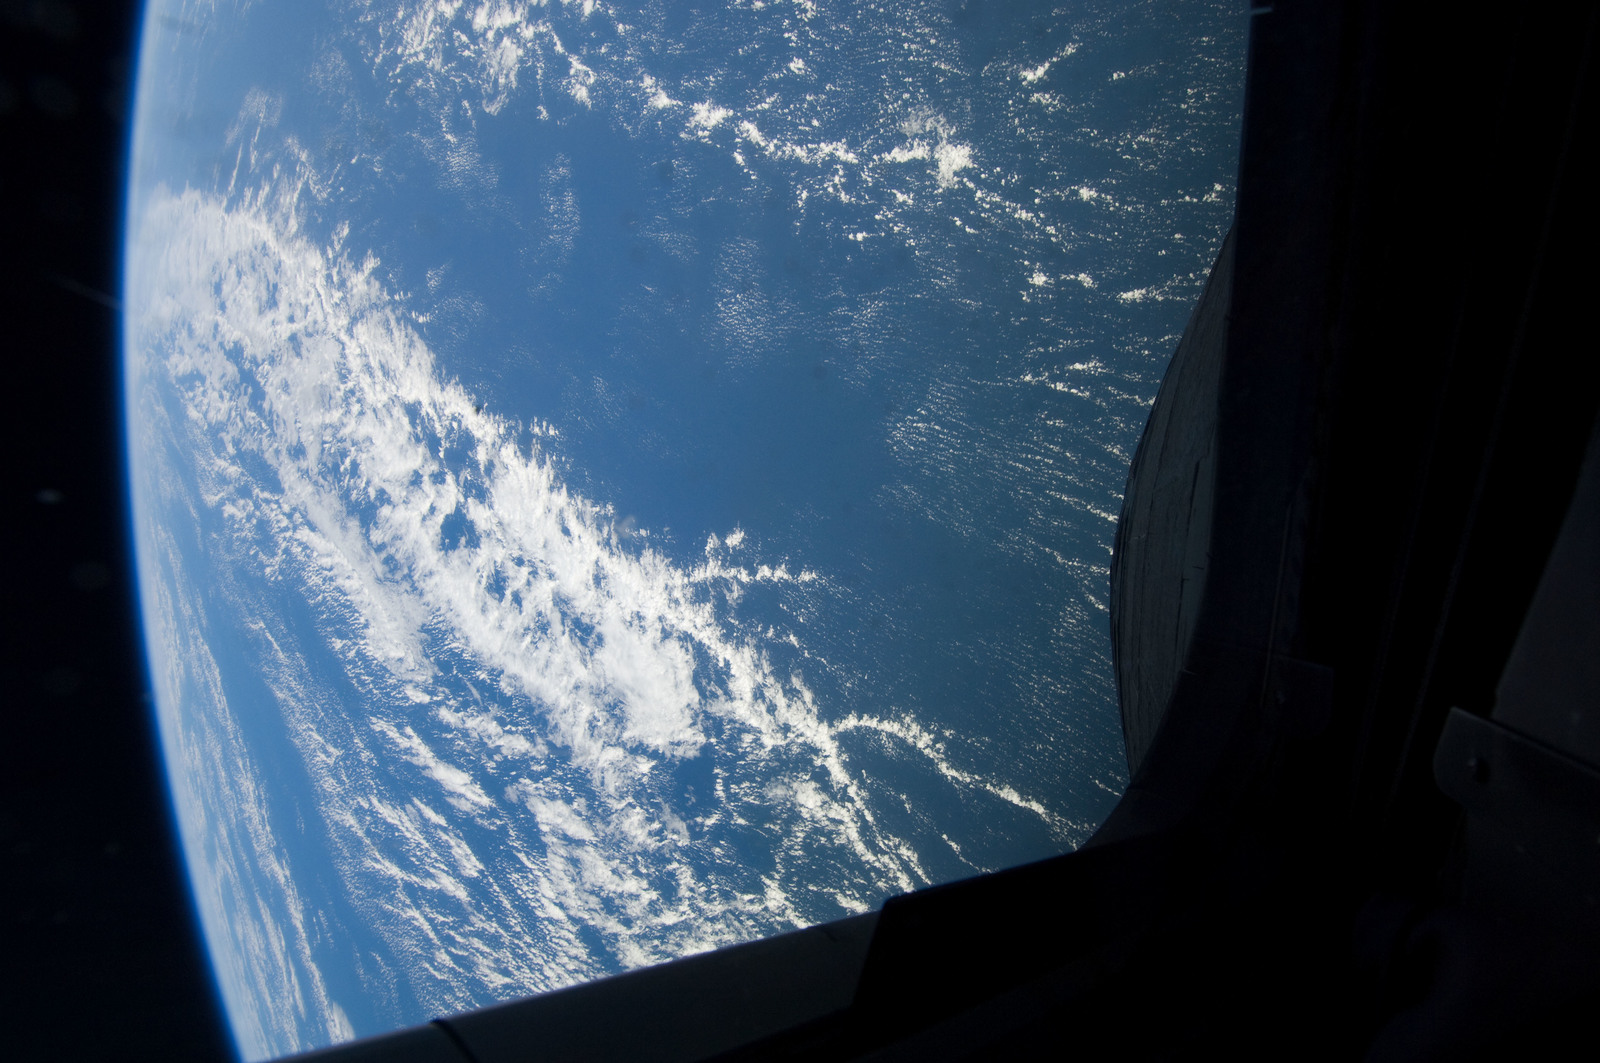 s133E006940 - STS-133 - Earth Observation taken by the STS-133 crew